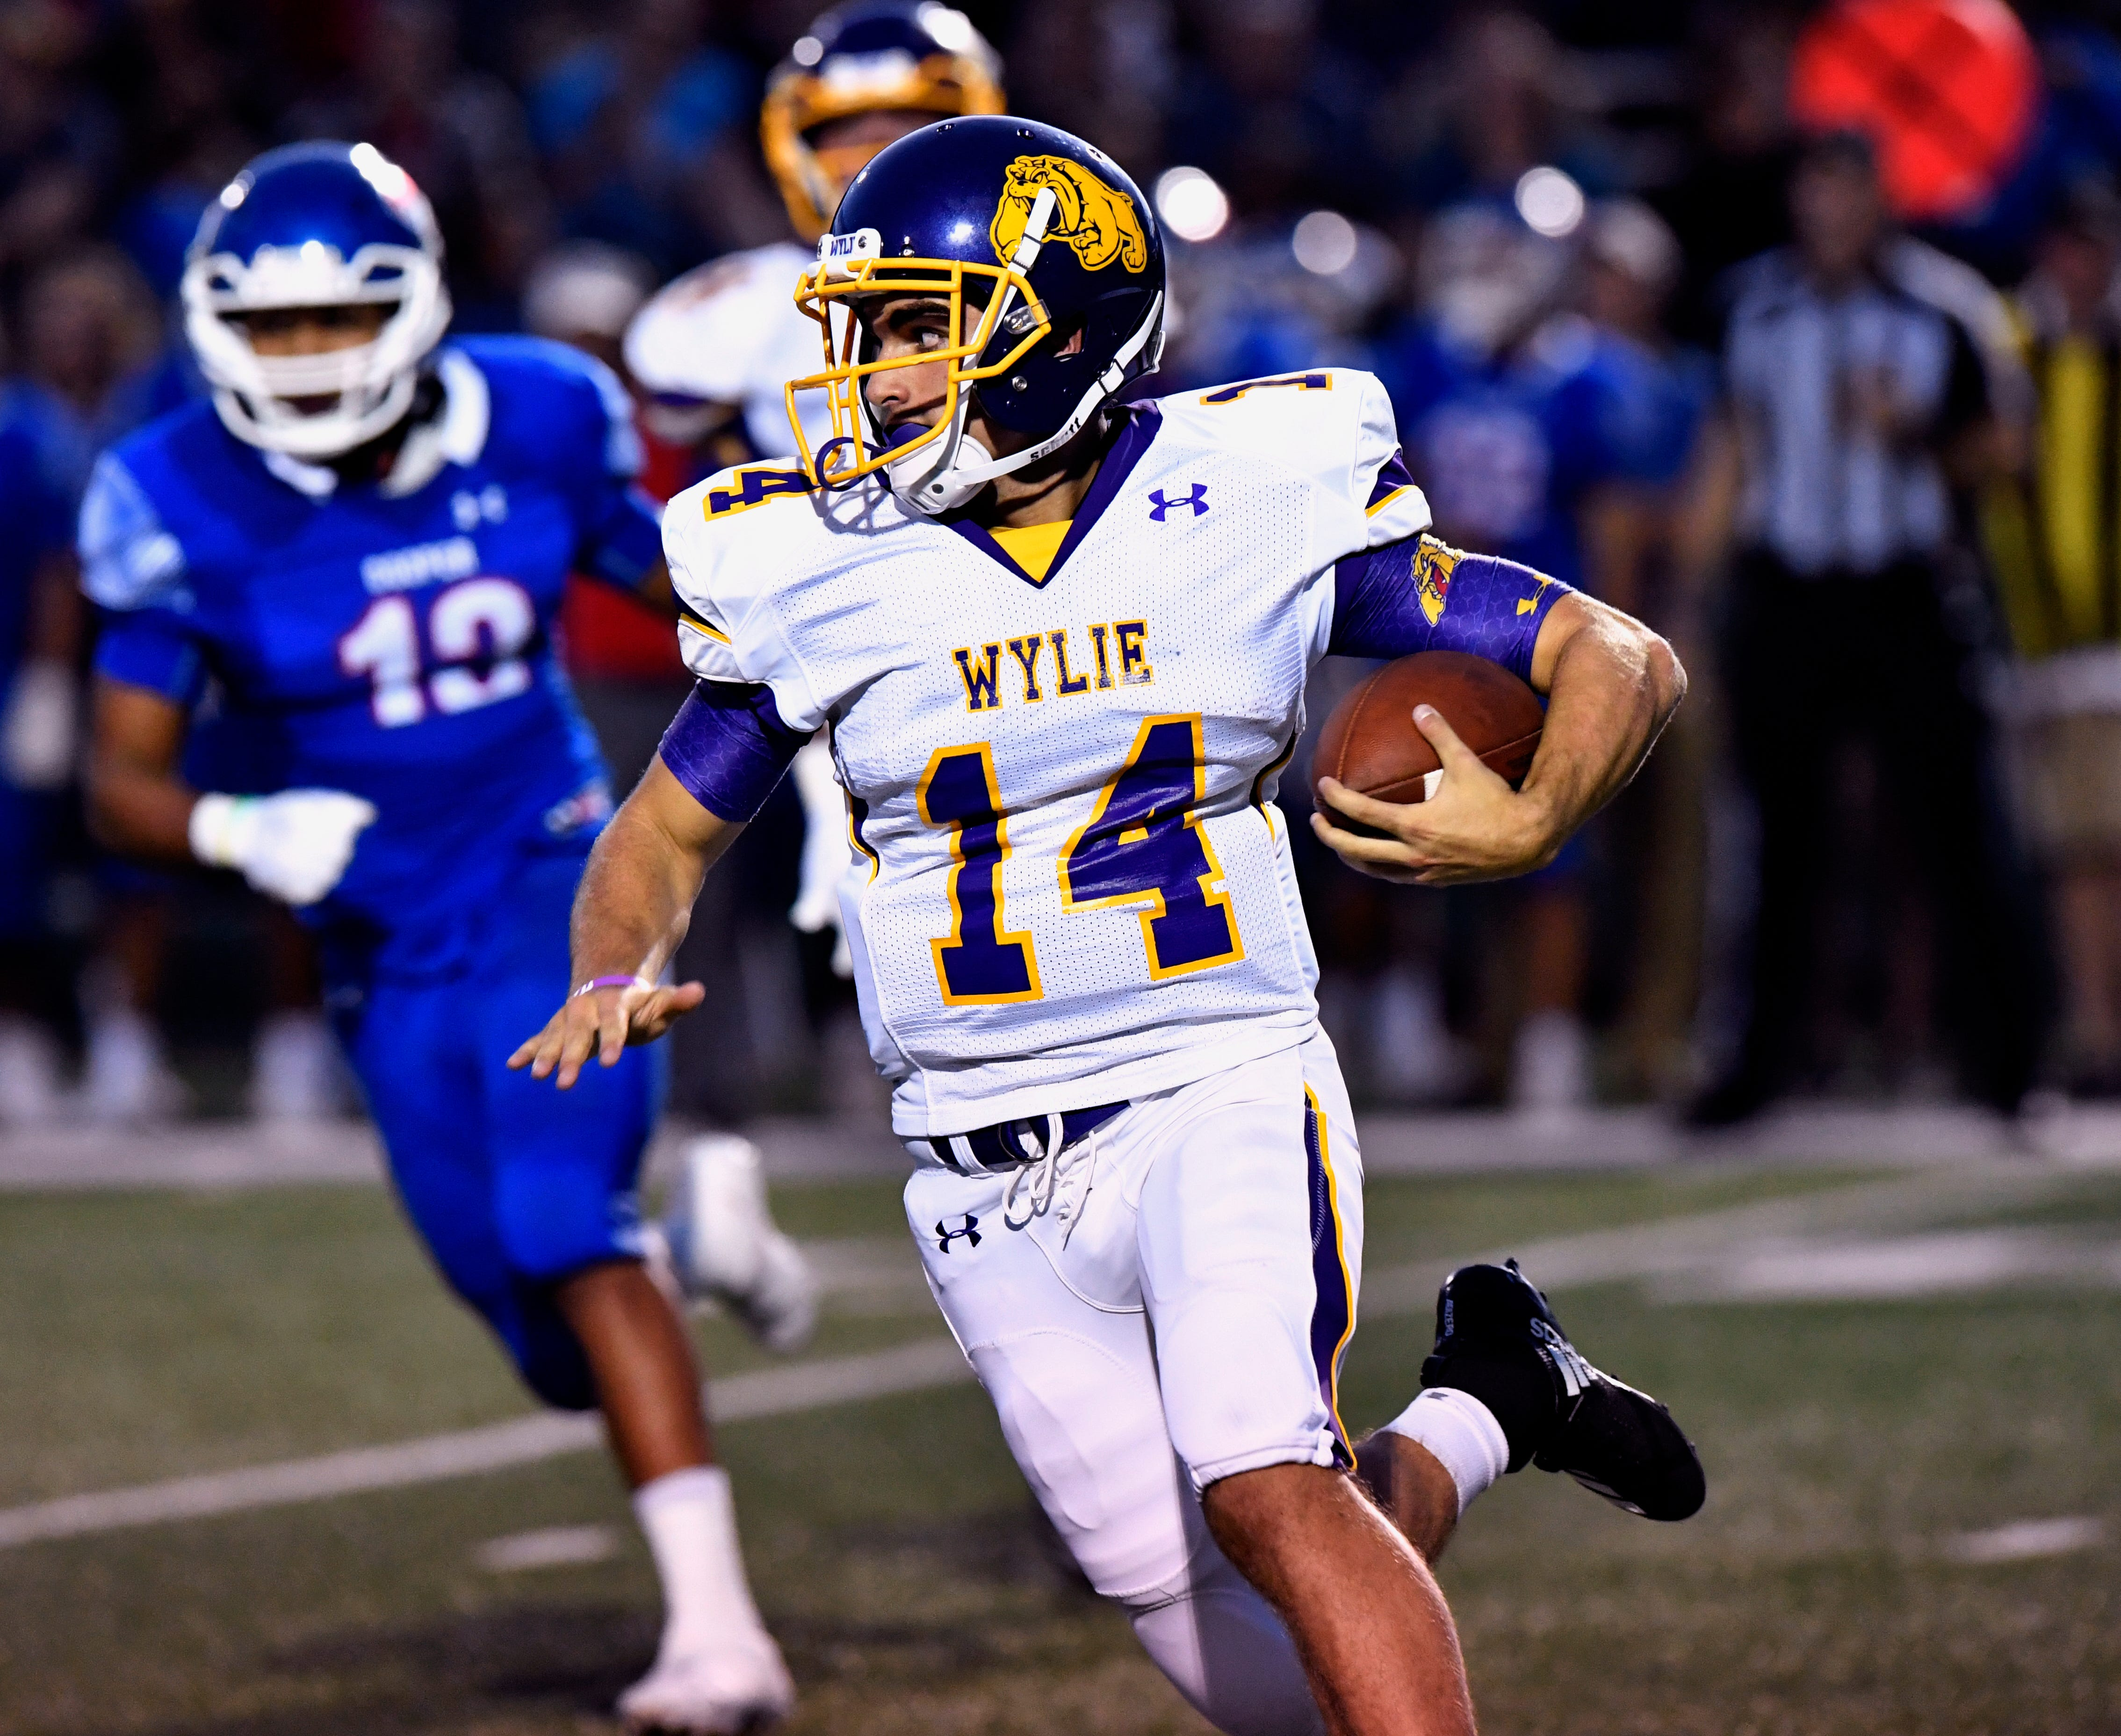 Wylie quarterback Jaxon Hansen scrambles with the ball in Thursday's 48-0 loss to the Cooper Cougars at Shotwell Stadium.